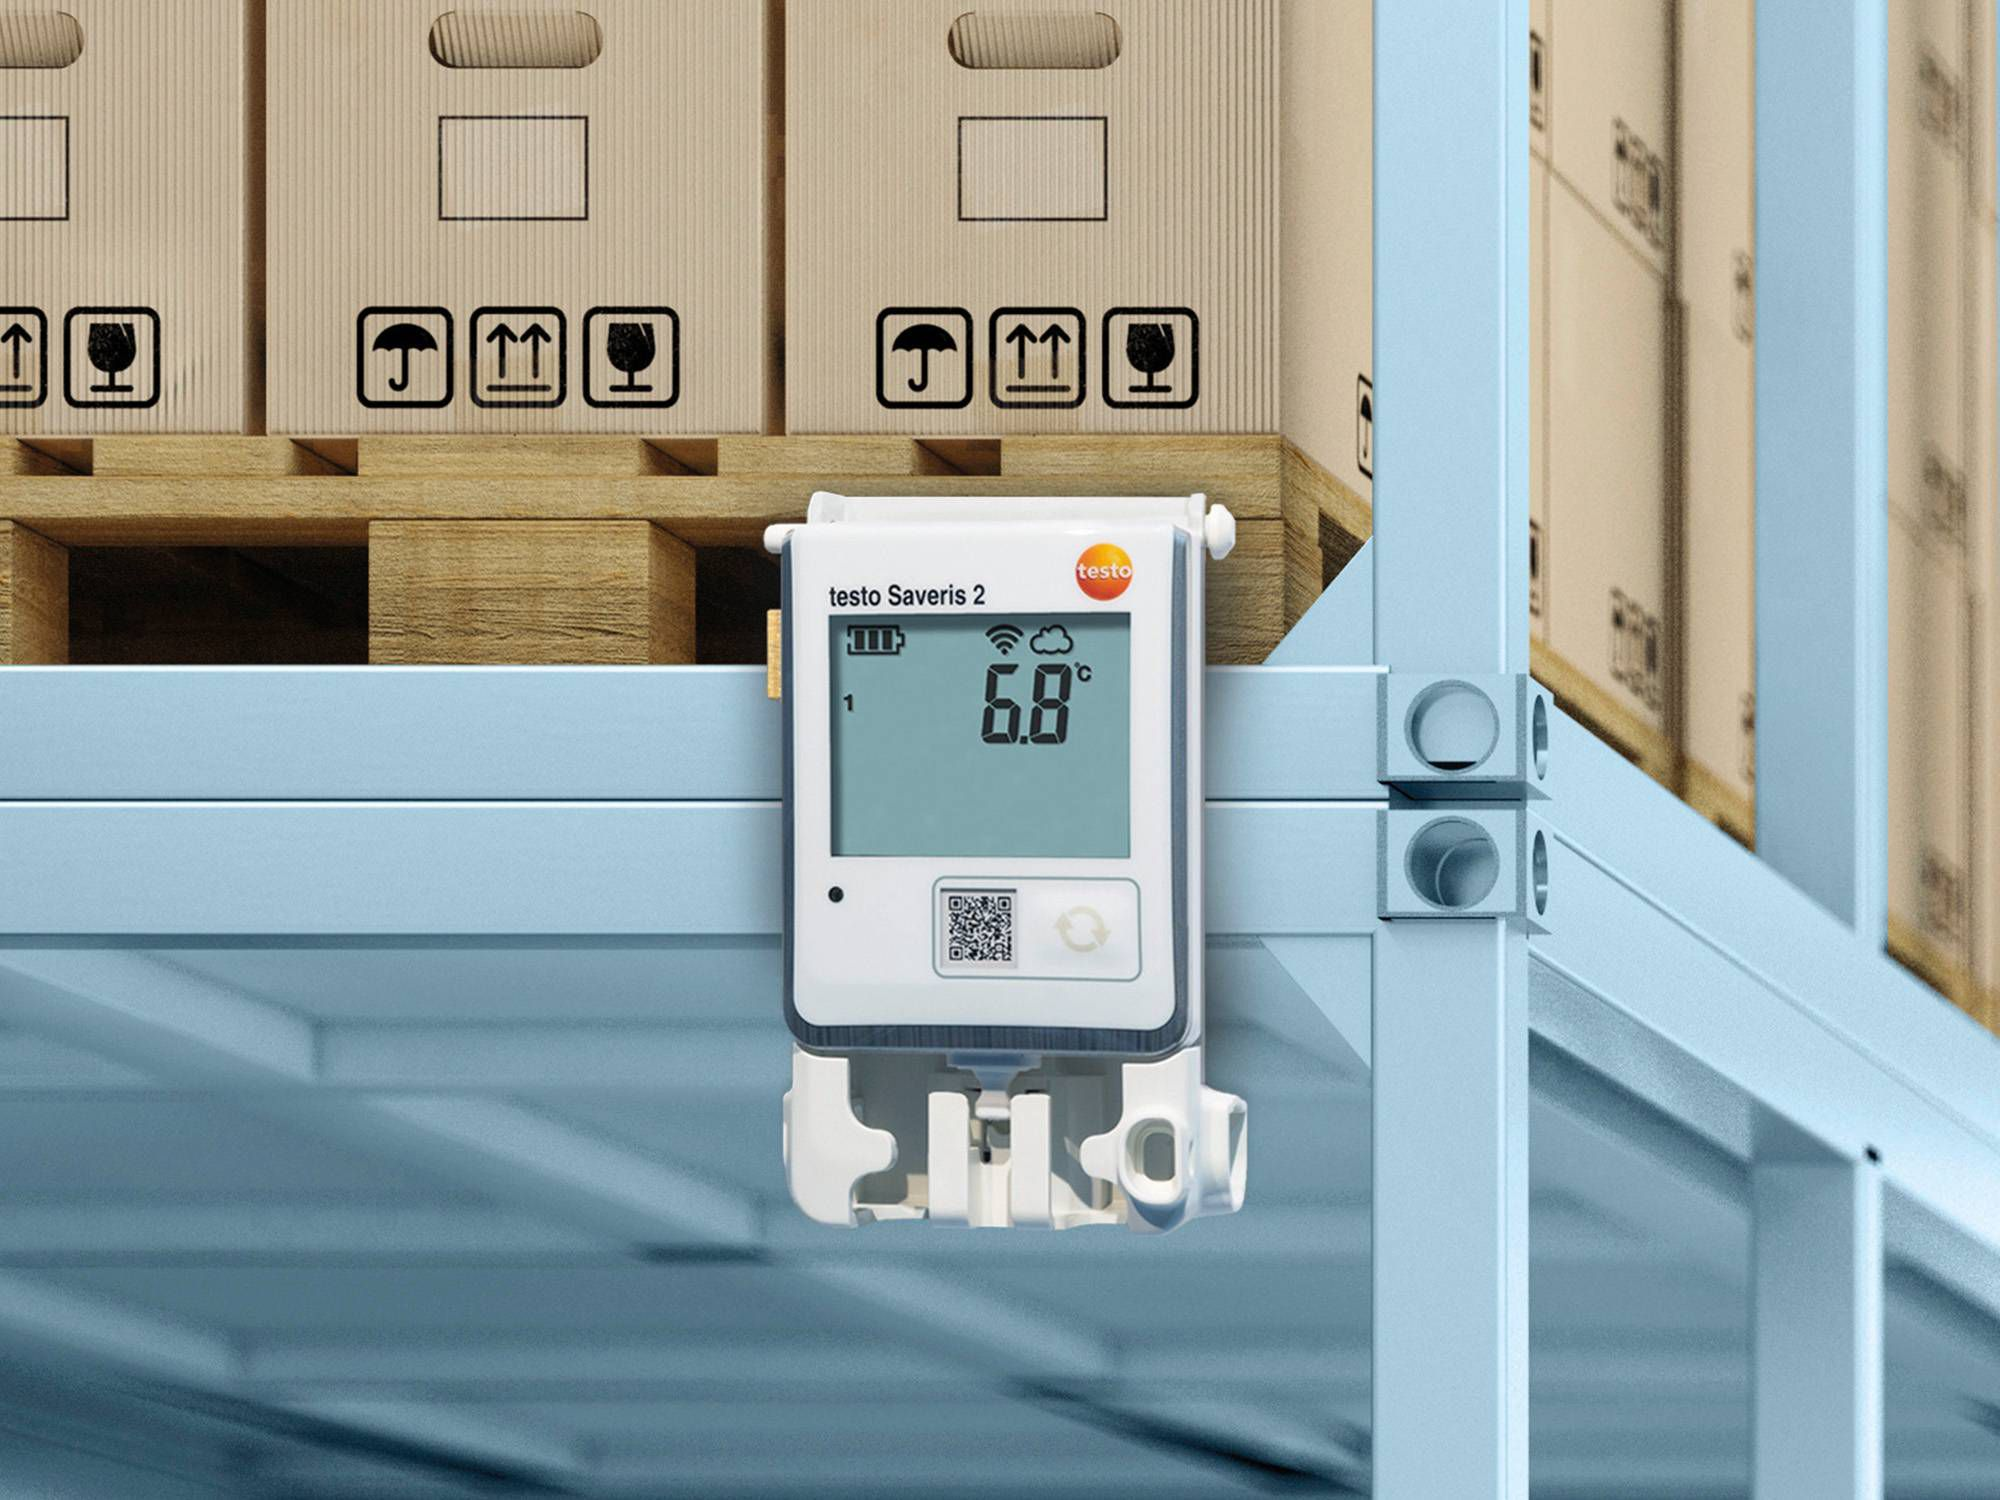 IAQ monitoring in a pharmaceutical warehouse with the testo Saveris 2 radio data logger system